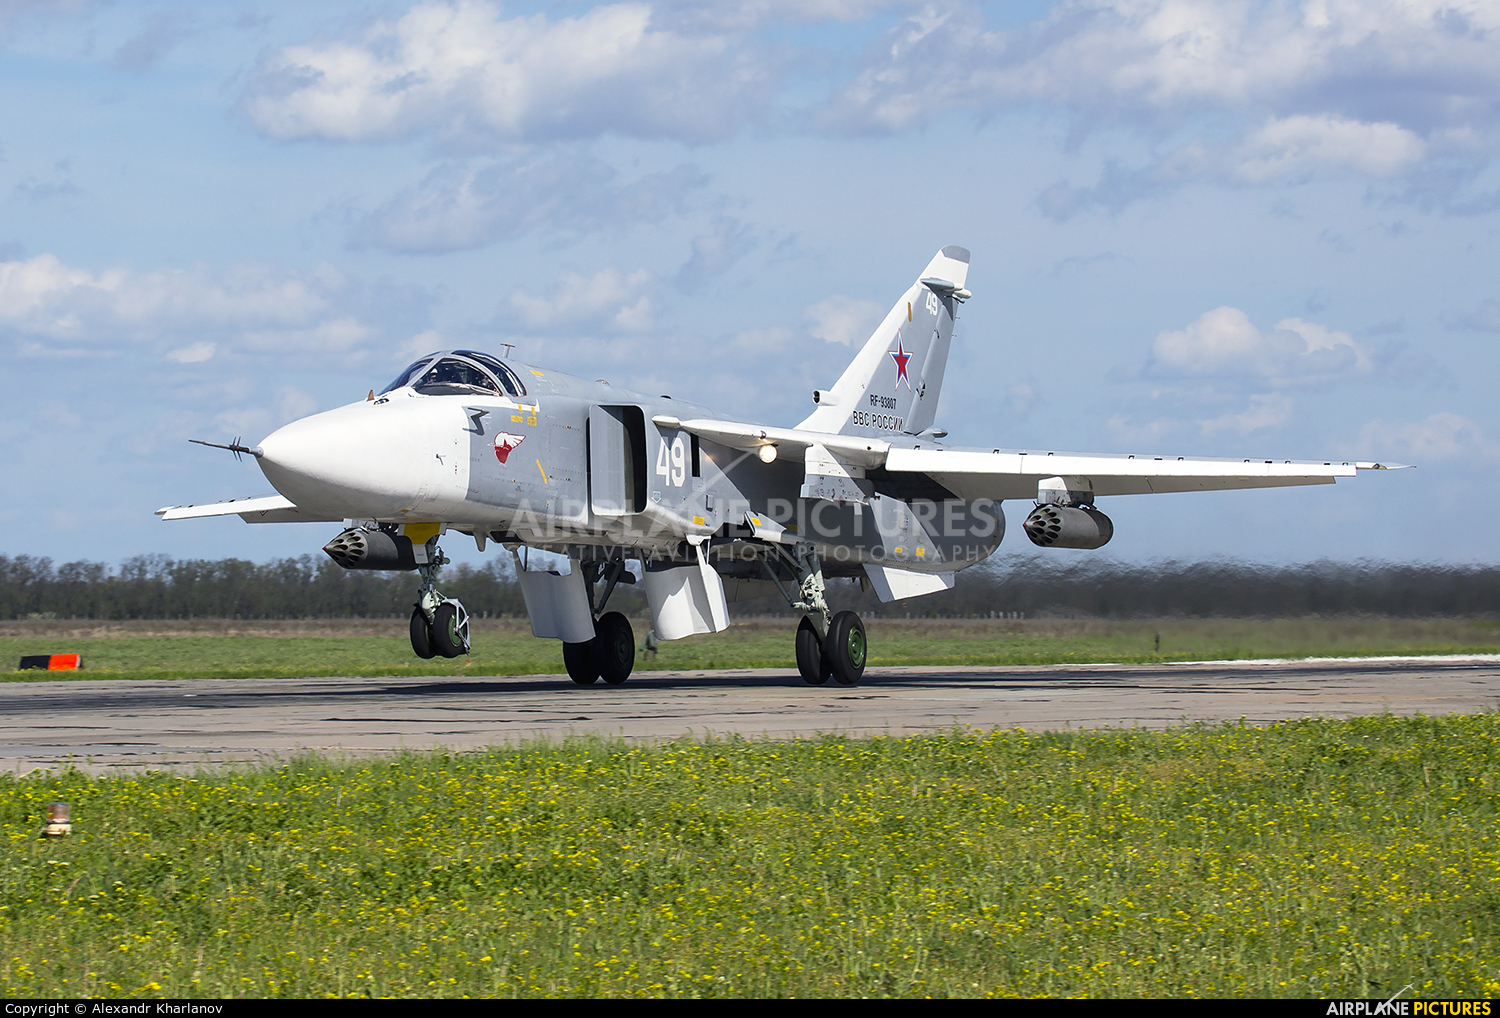 Russia - Air Force 49 aircraft at Undisclosed Location